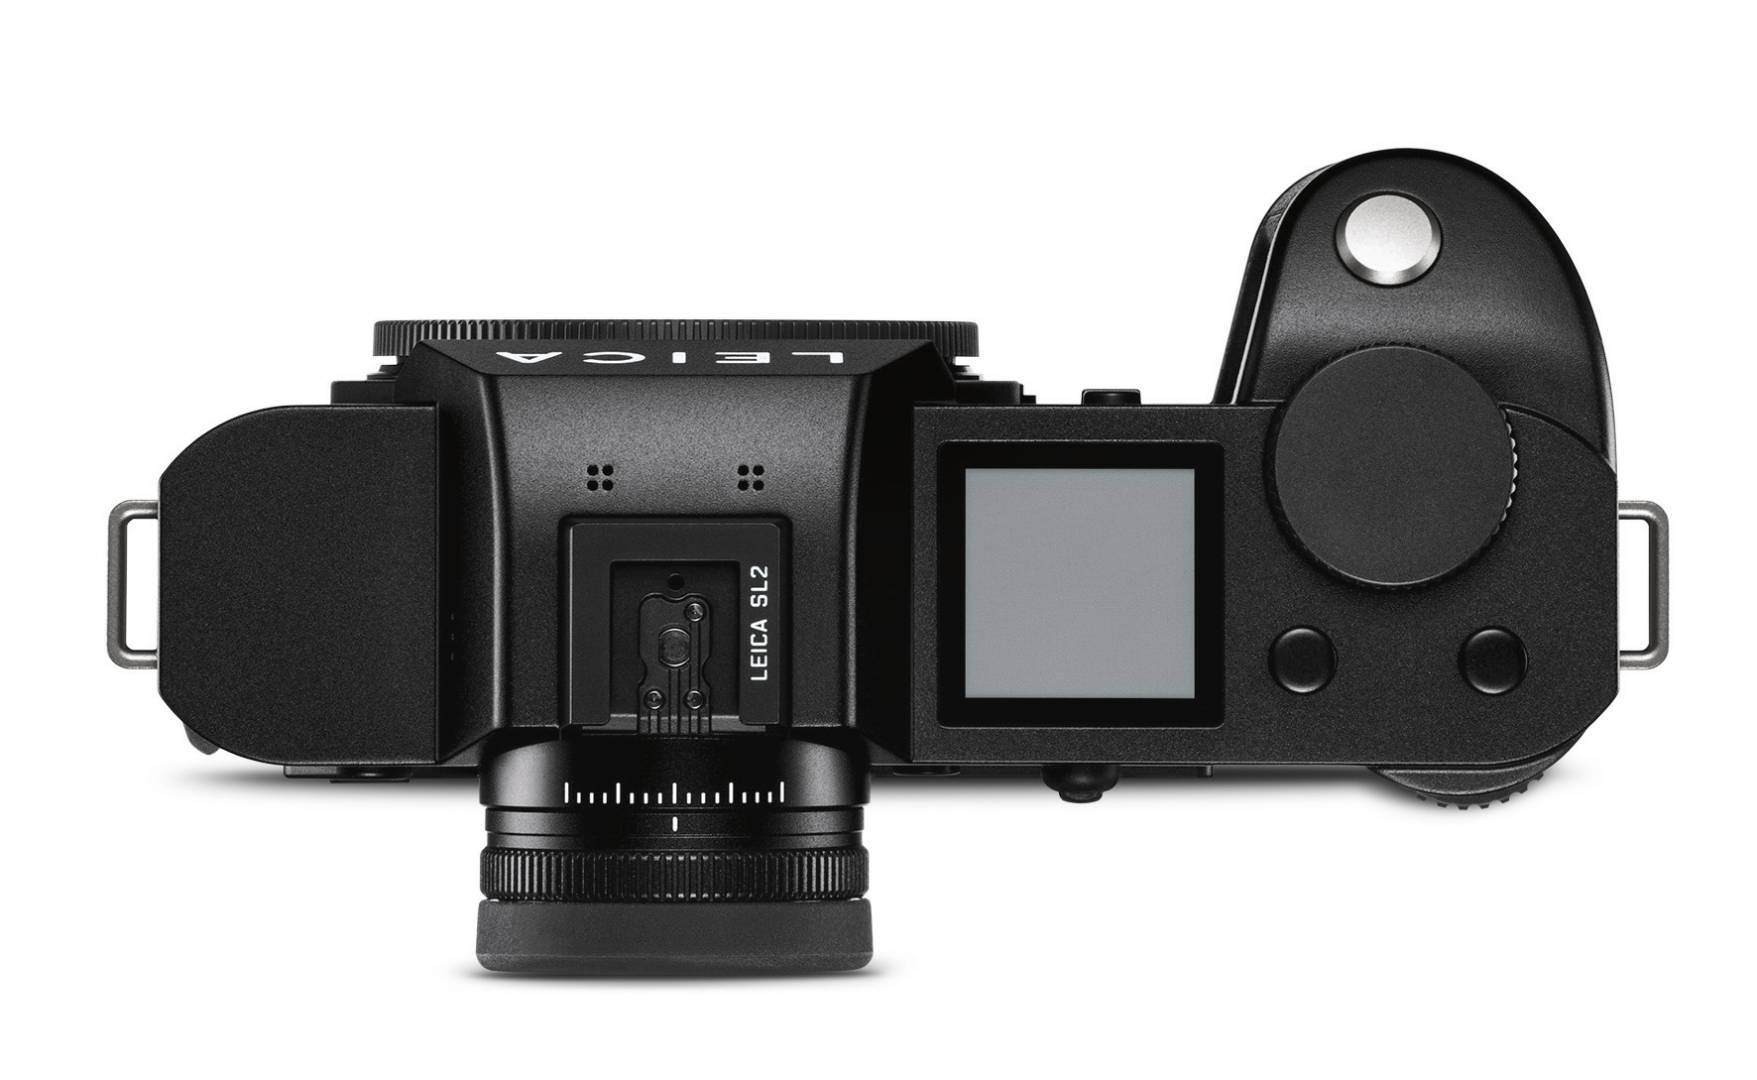 The top plate is very similar to the minimalistic SL in appearance. The very impressive viewfinder features the same very precise diopter ring as seen on the SL